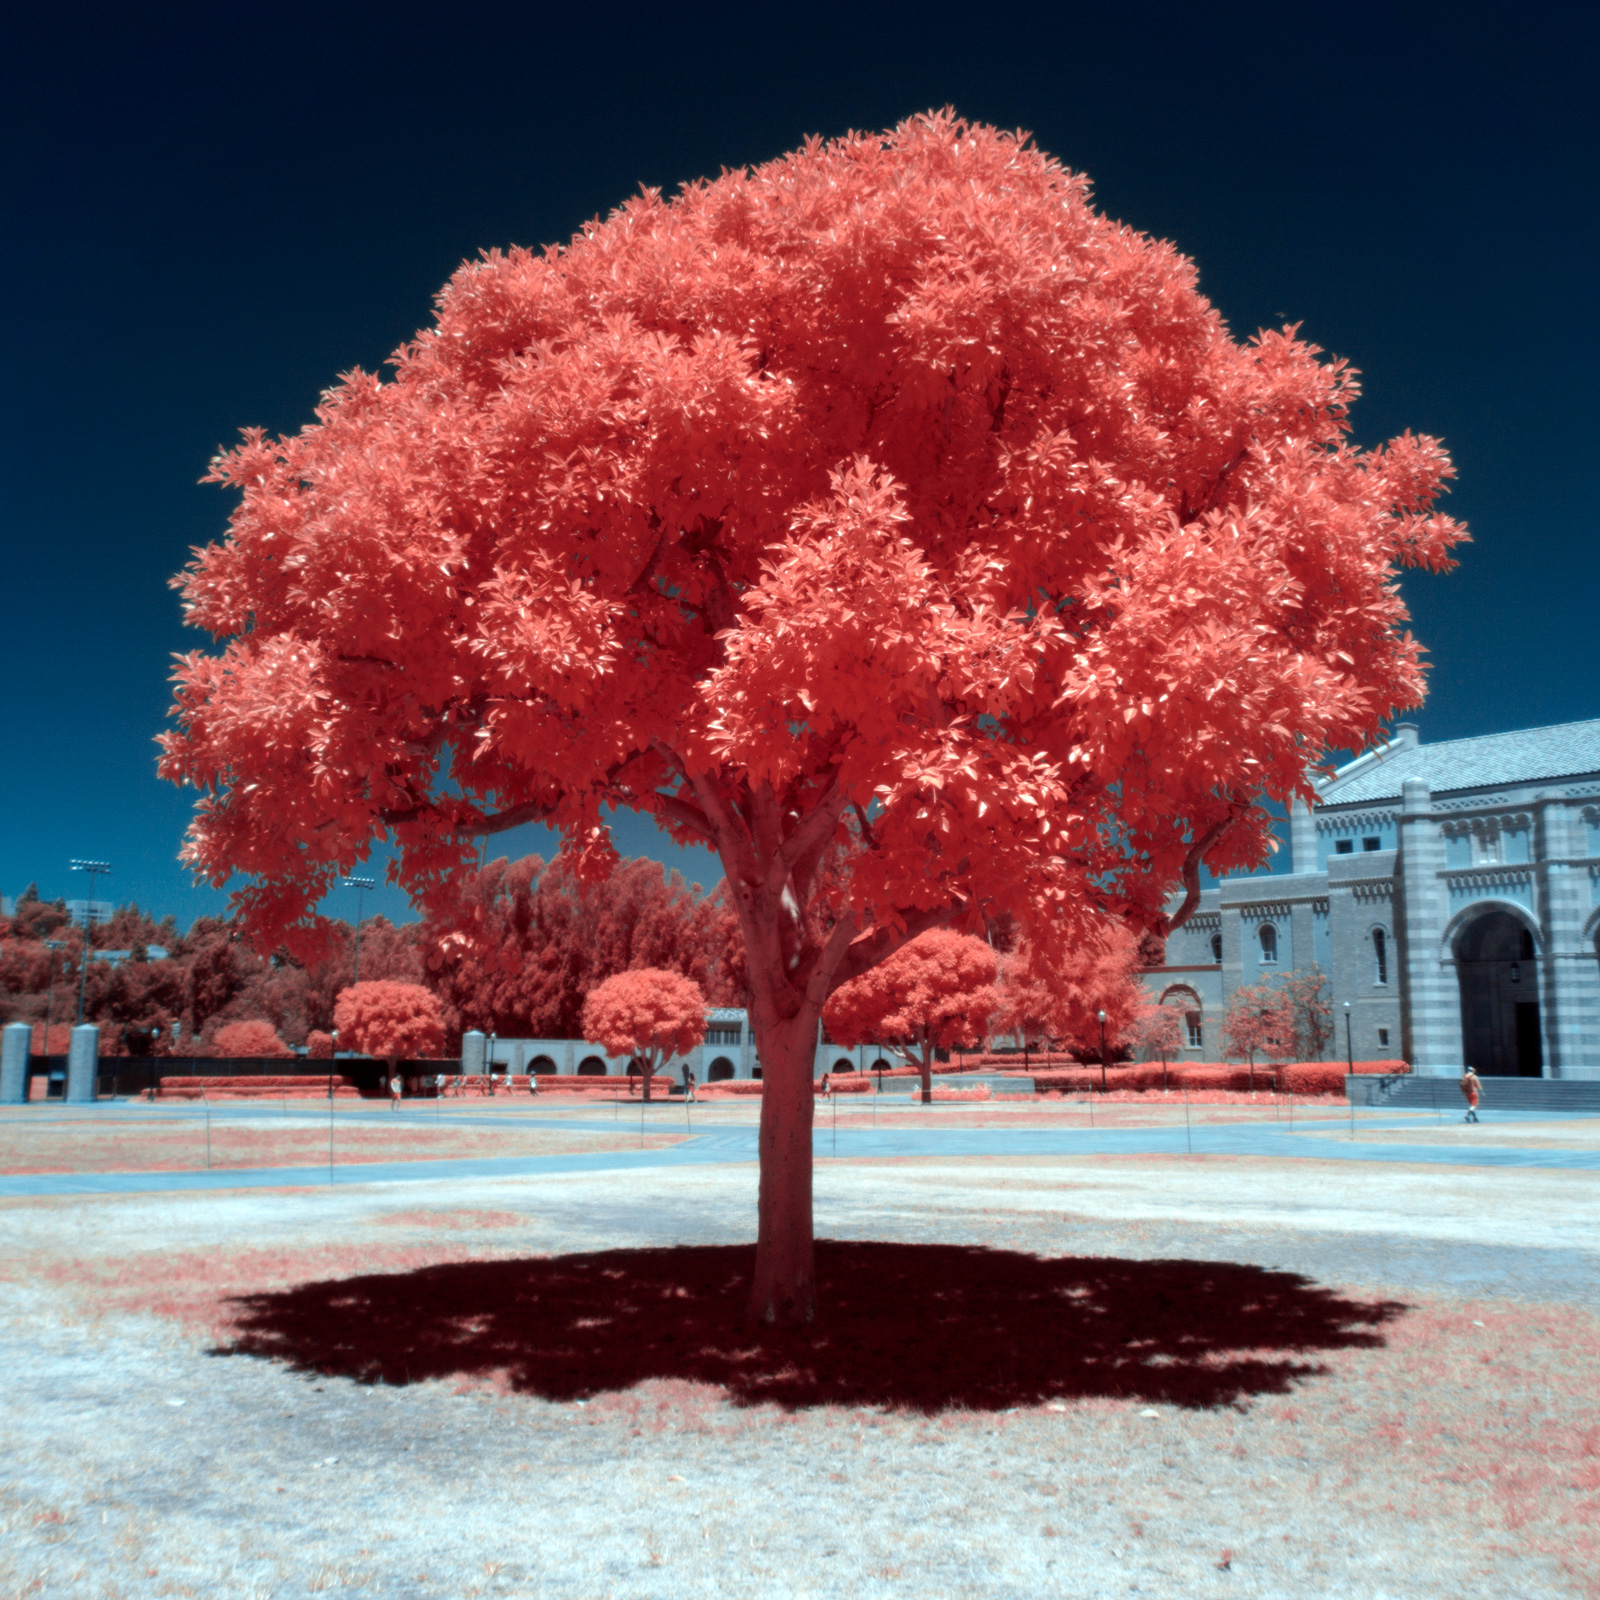 Digital Infrared Photography by Chris Peters